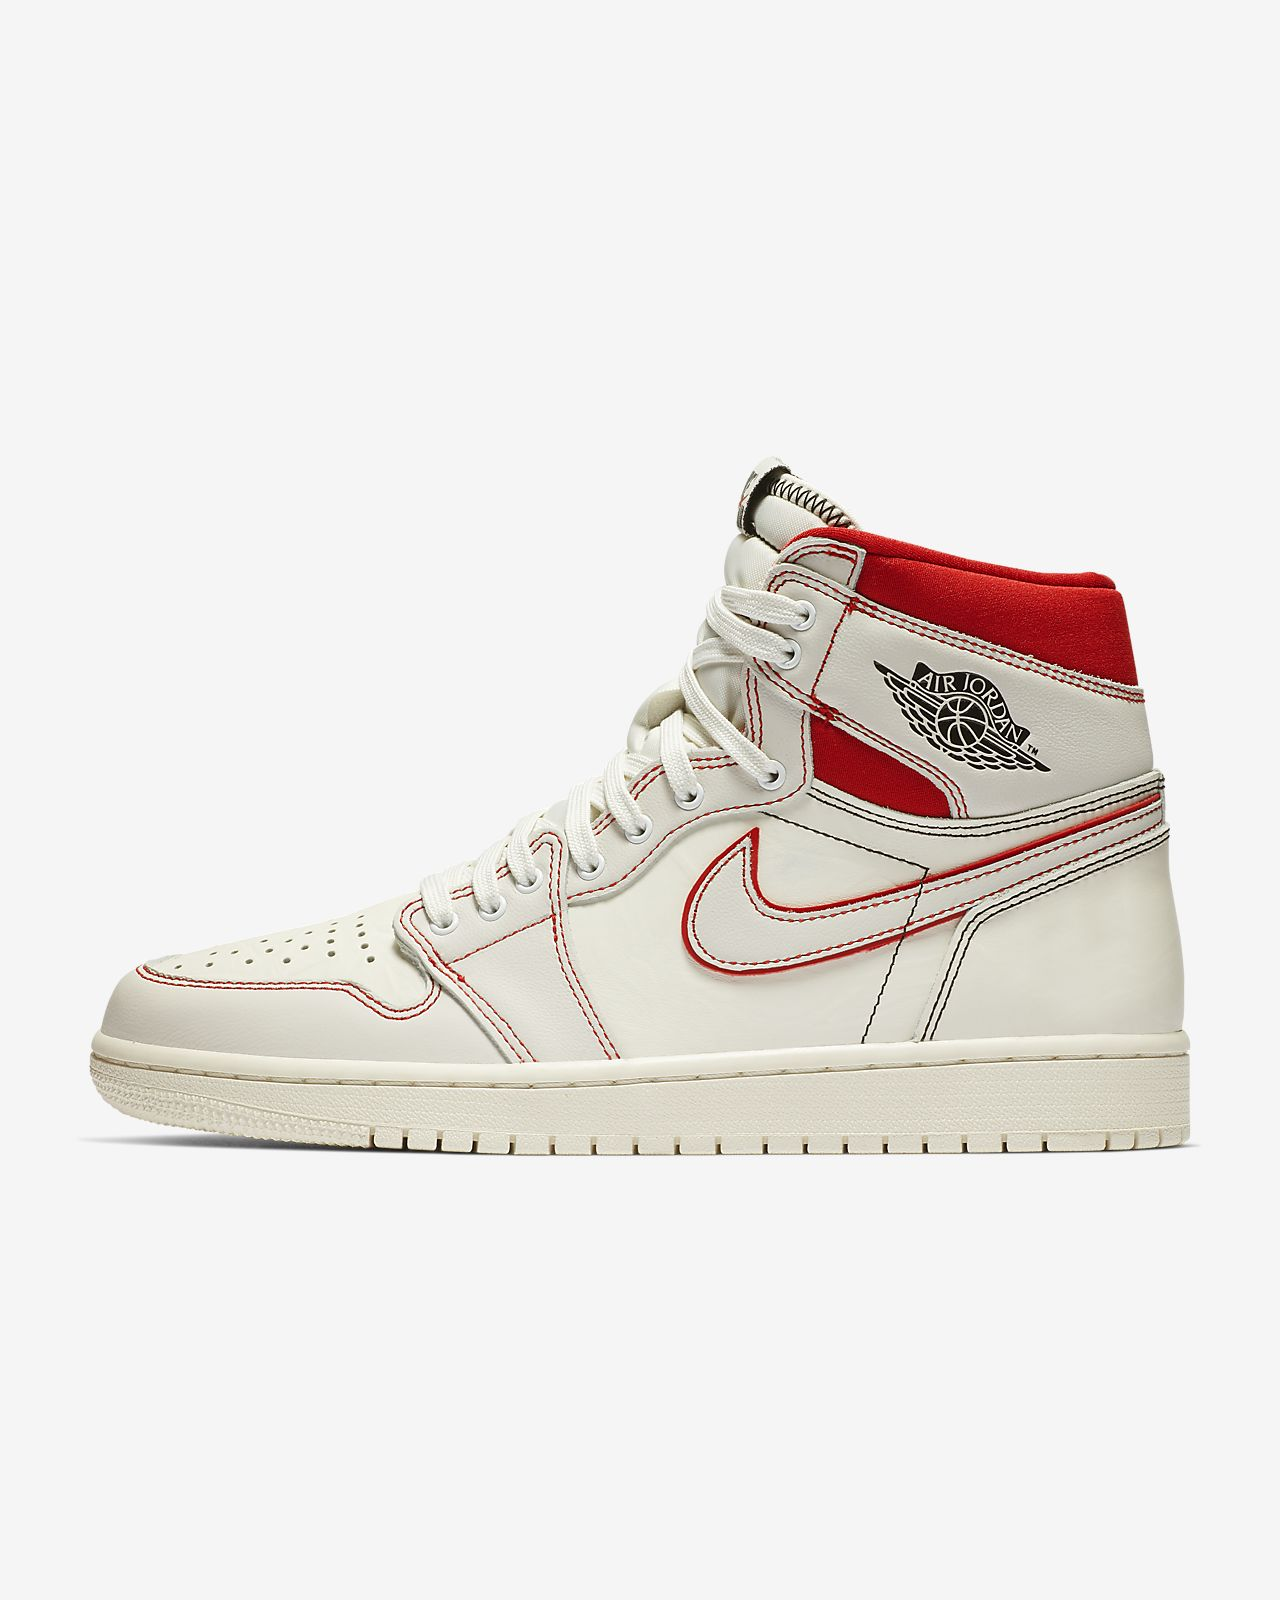 reputable site 65acf 5bf59 Low Resolution Chaussure Air Jordan 1 Retro High OG Chaussure Air Jordan 1  Retro High OG